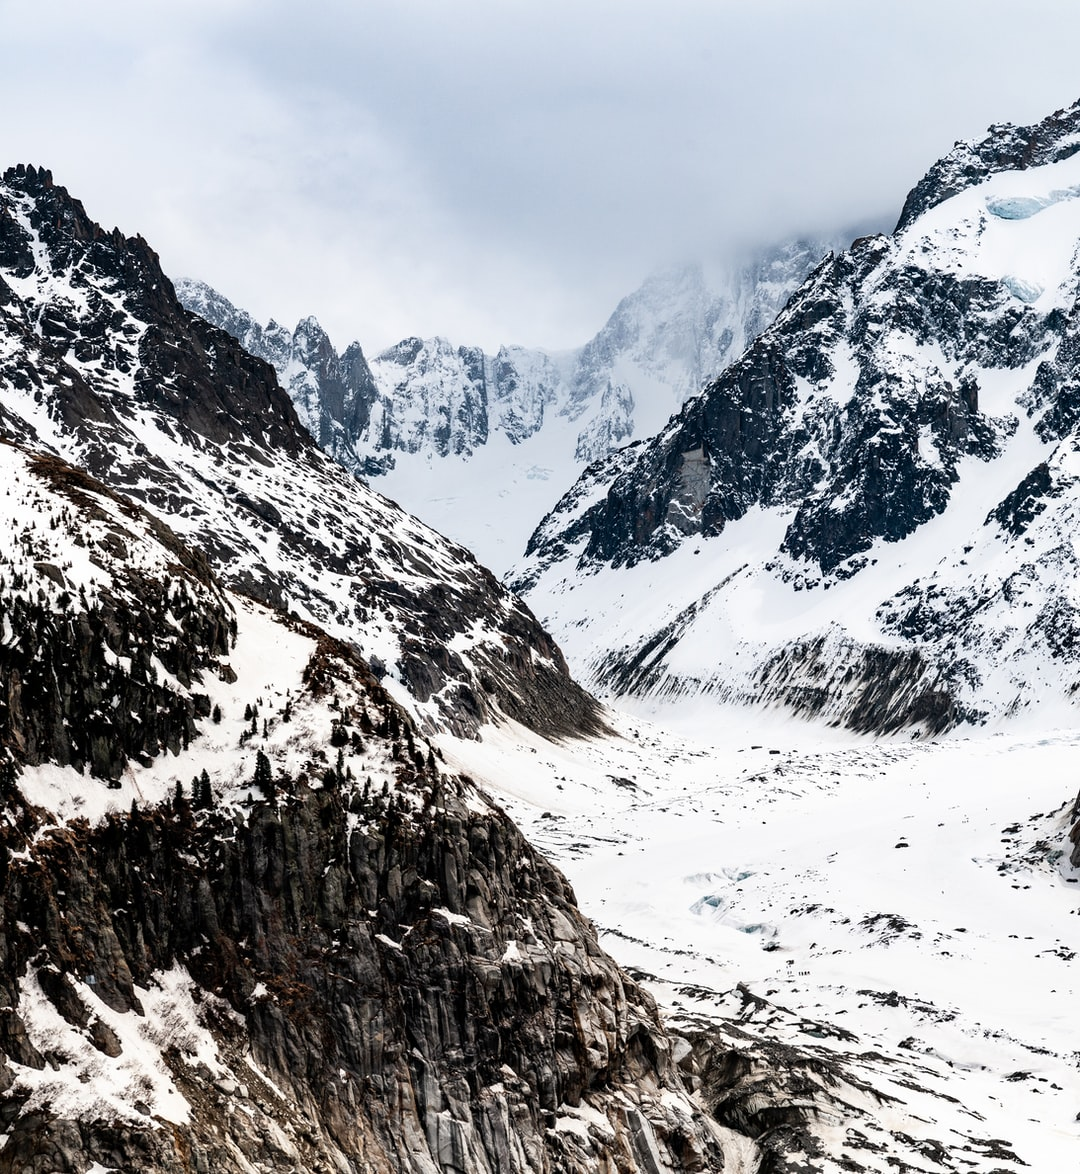 A moody view up the valee blanche from Montenvers